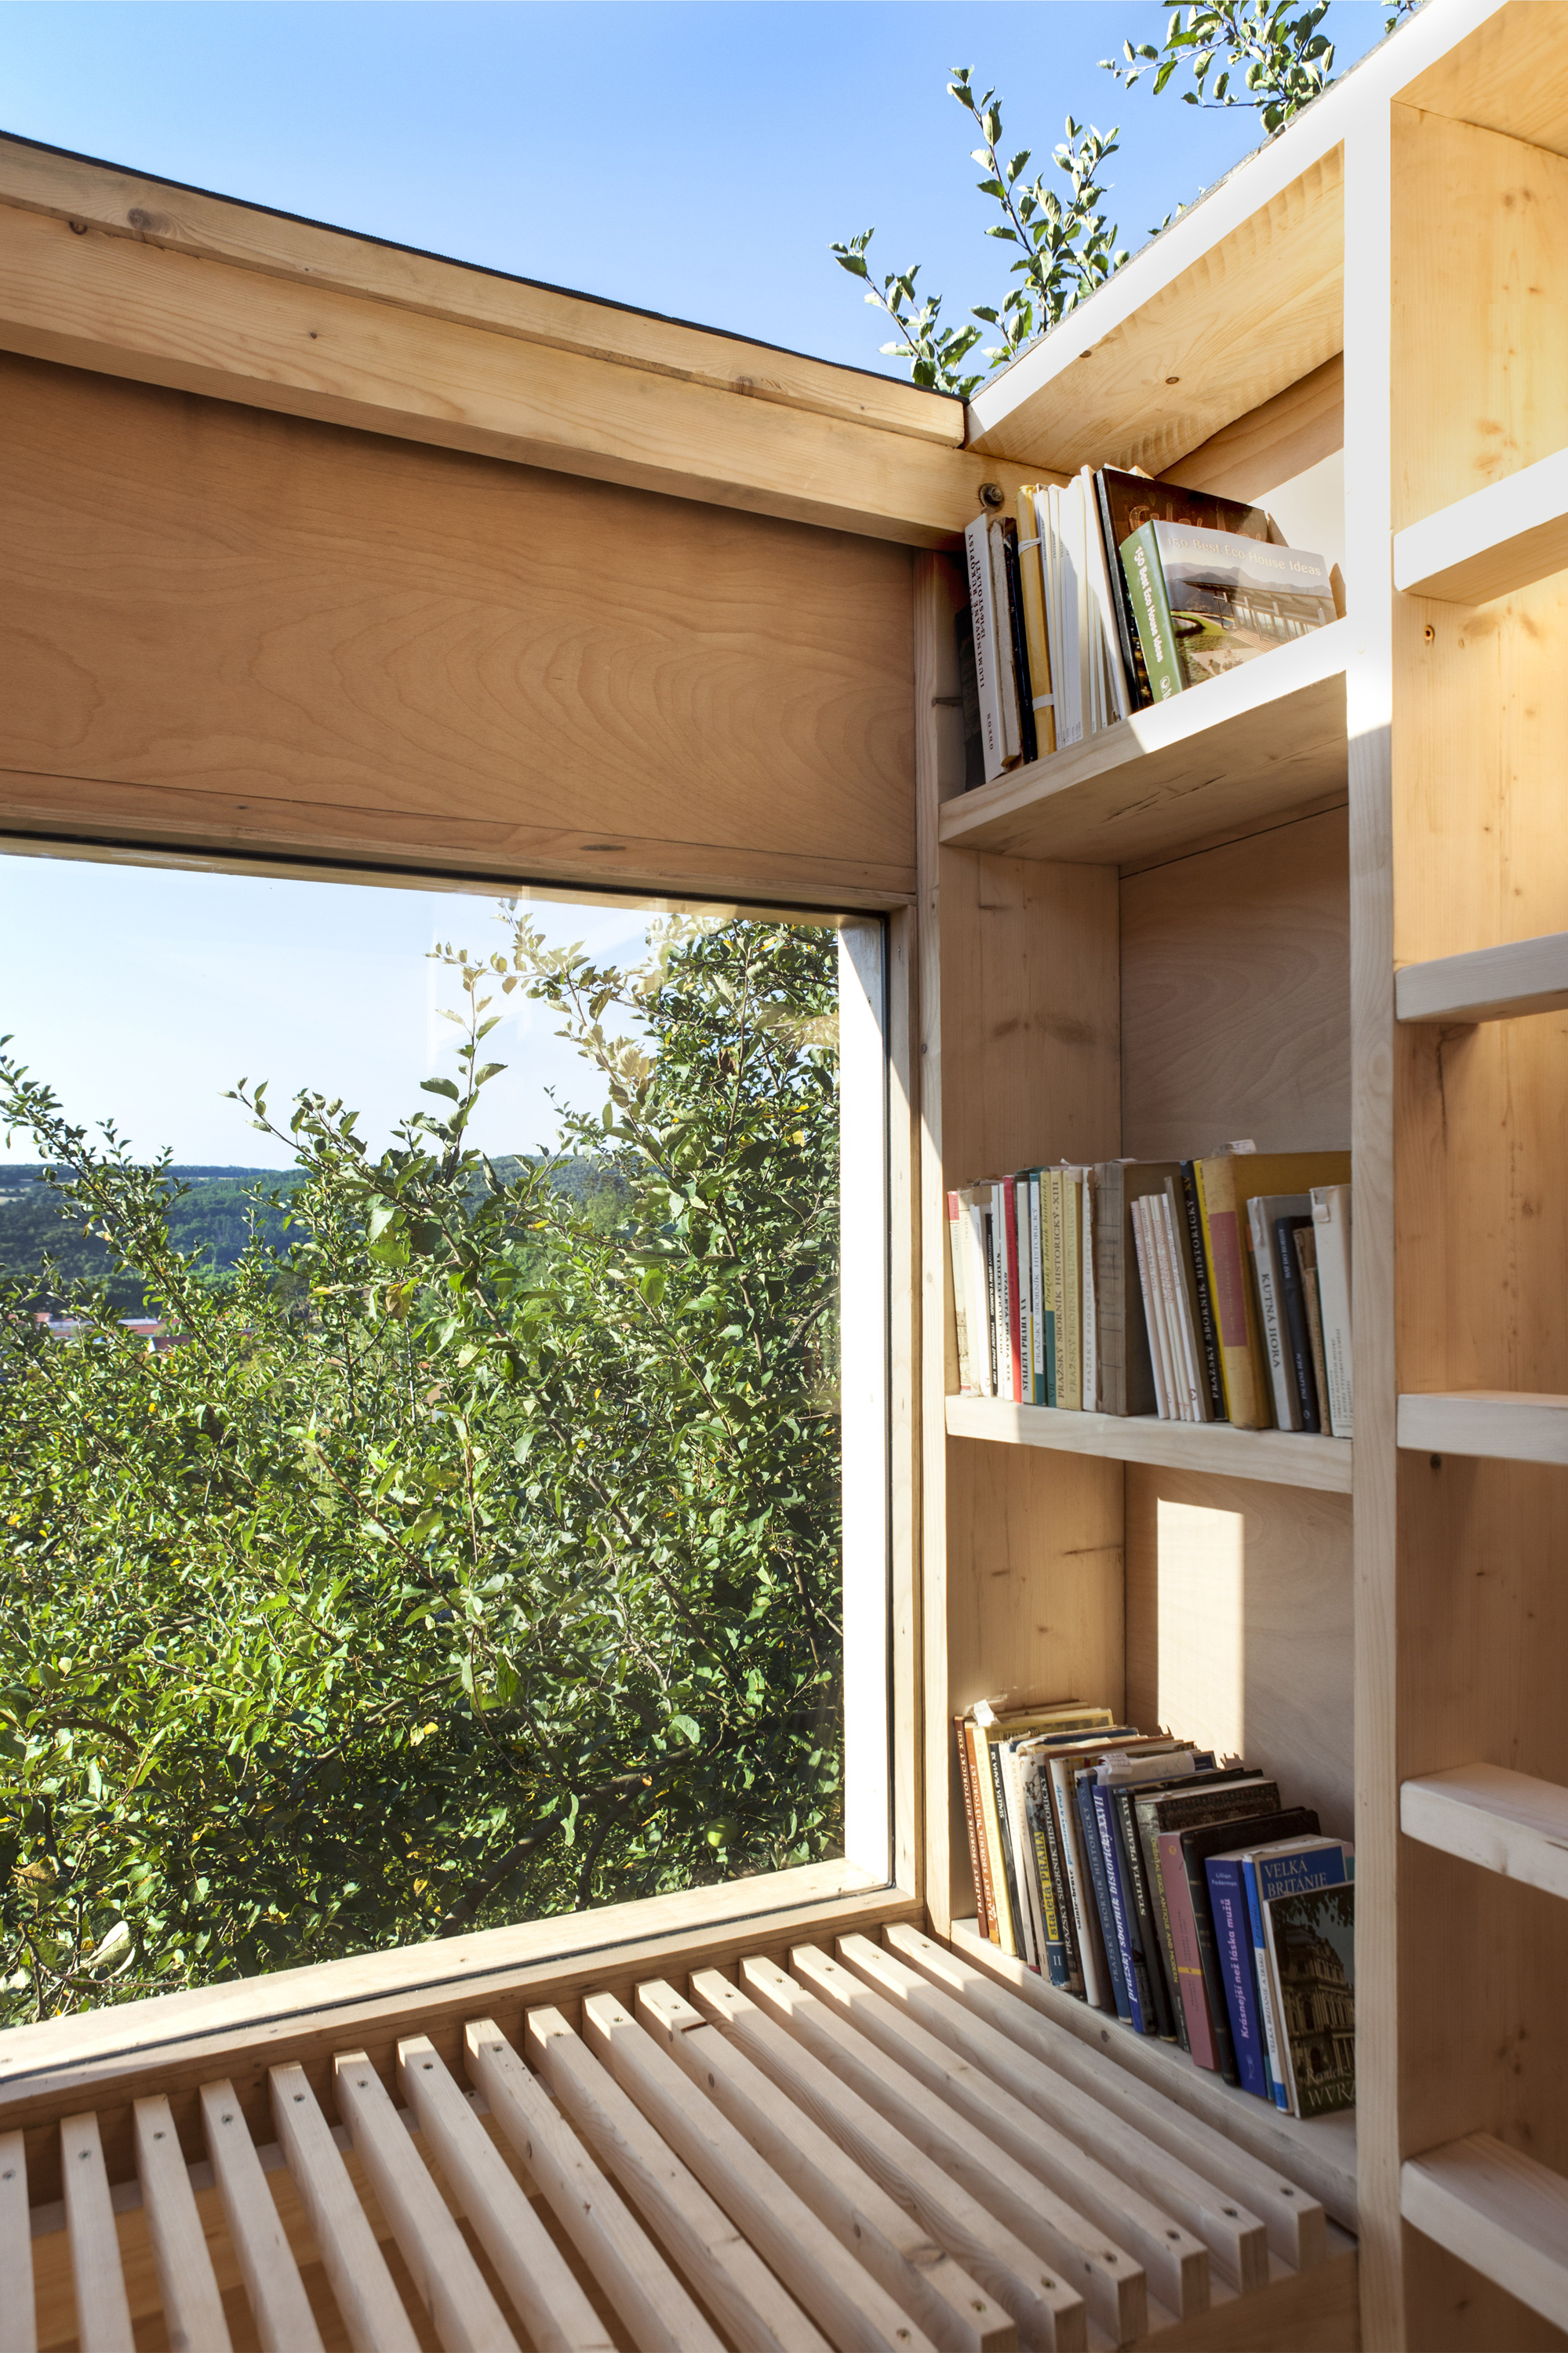 Garden Library by Mjölk architekti - Czech Republic - Humble Homes